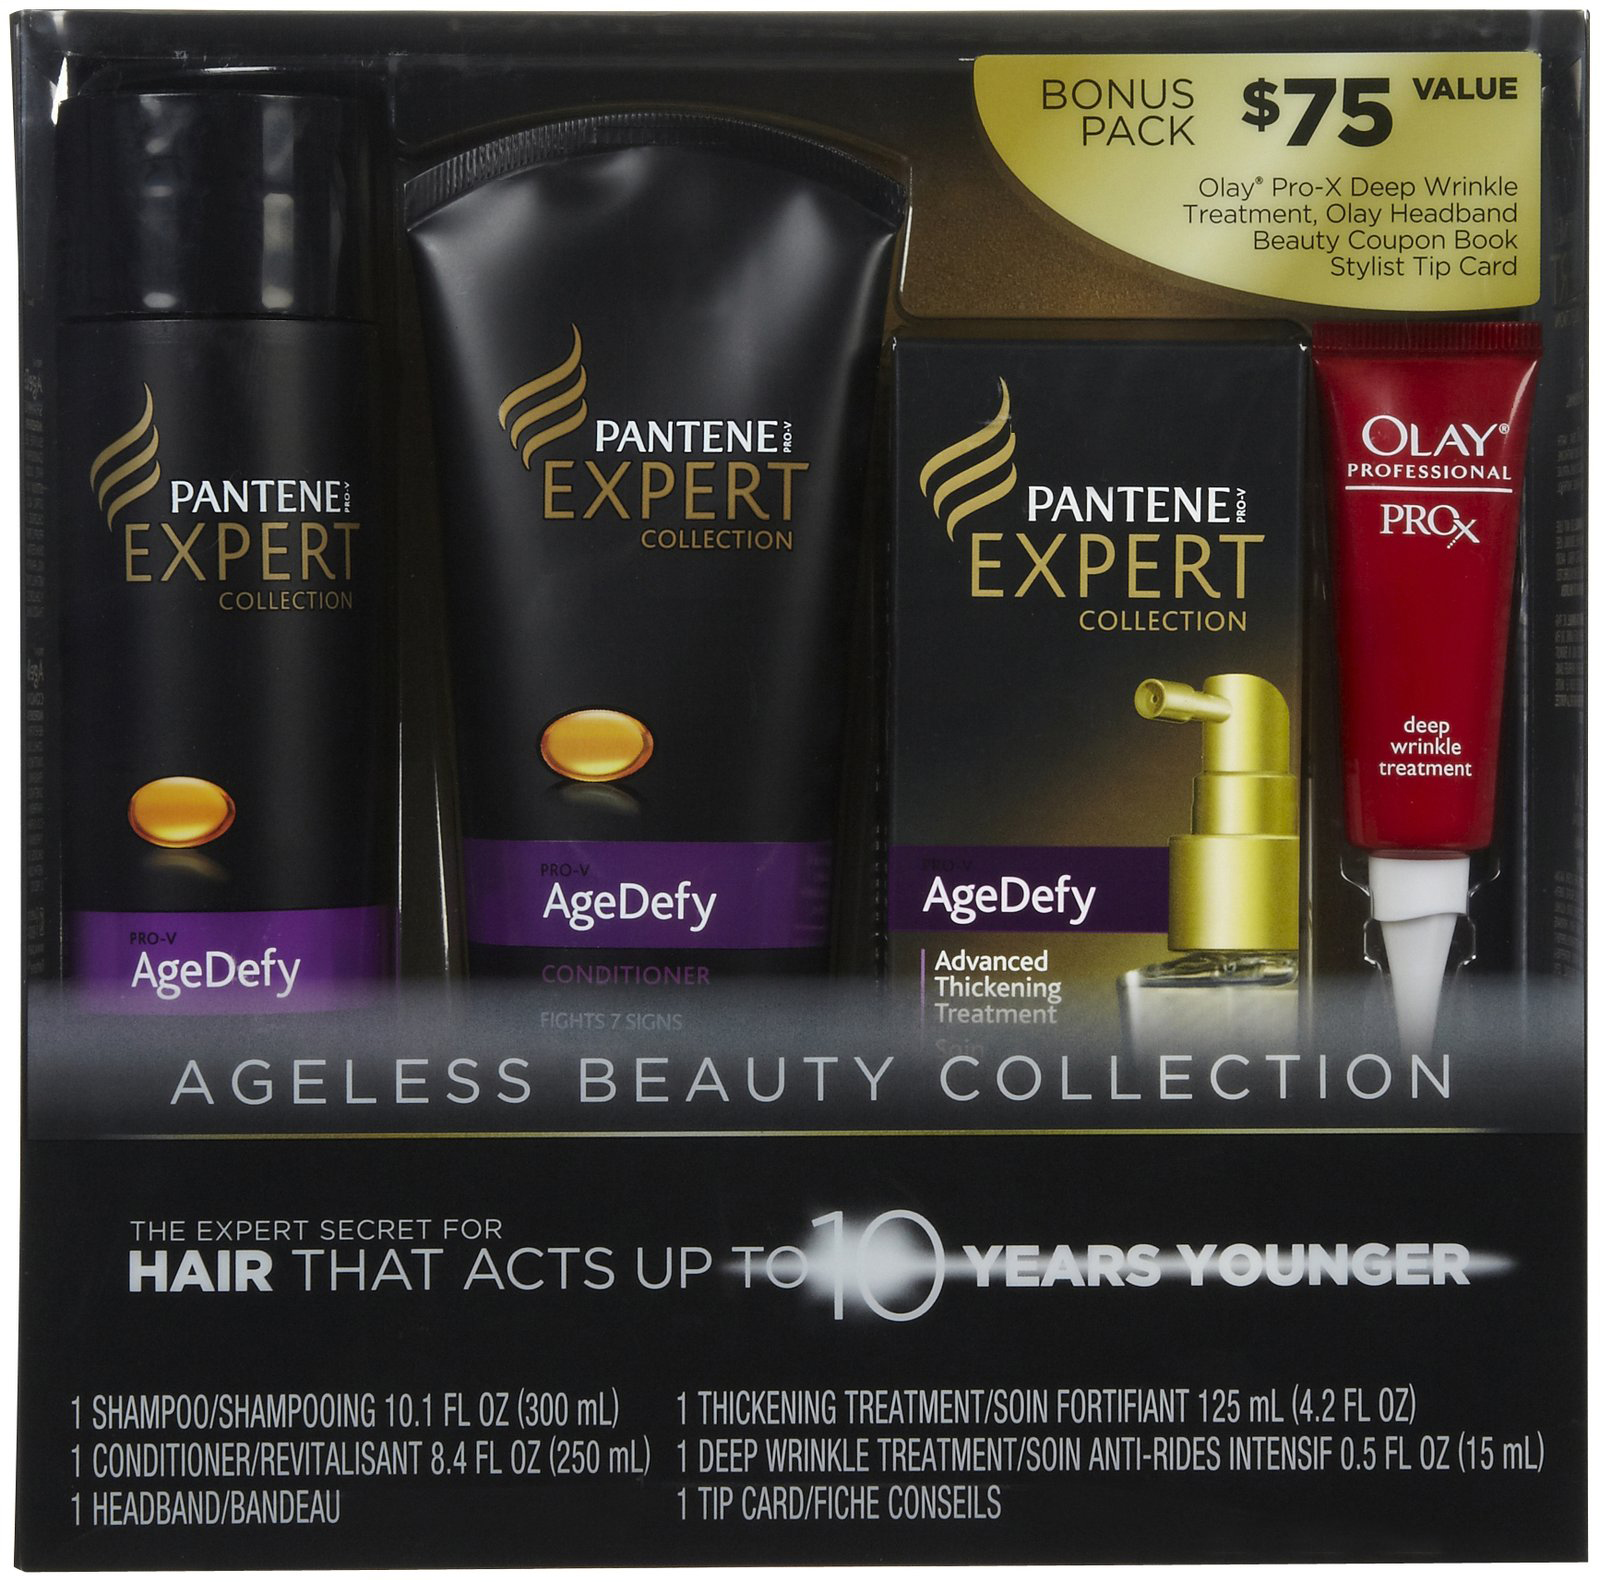 Pantene ageless beauty collection, Pantene Expert Collection, Oil of olay deep wrinkle treatment